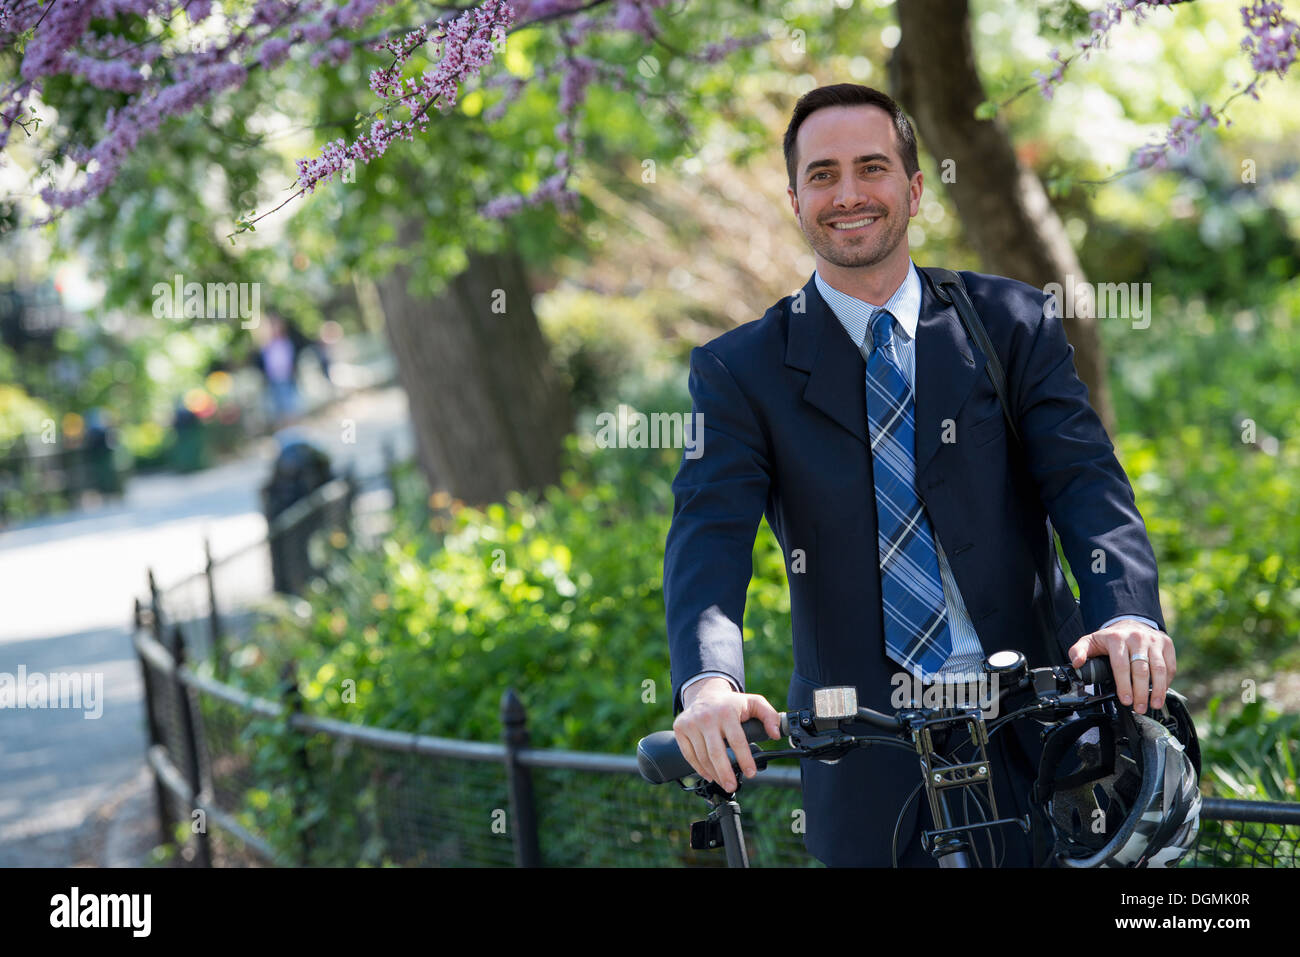 A man in a business suit astride a bicycle with helmet in hand. - Stock Image